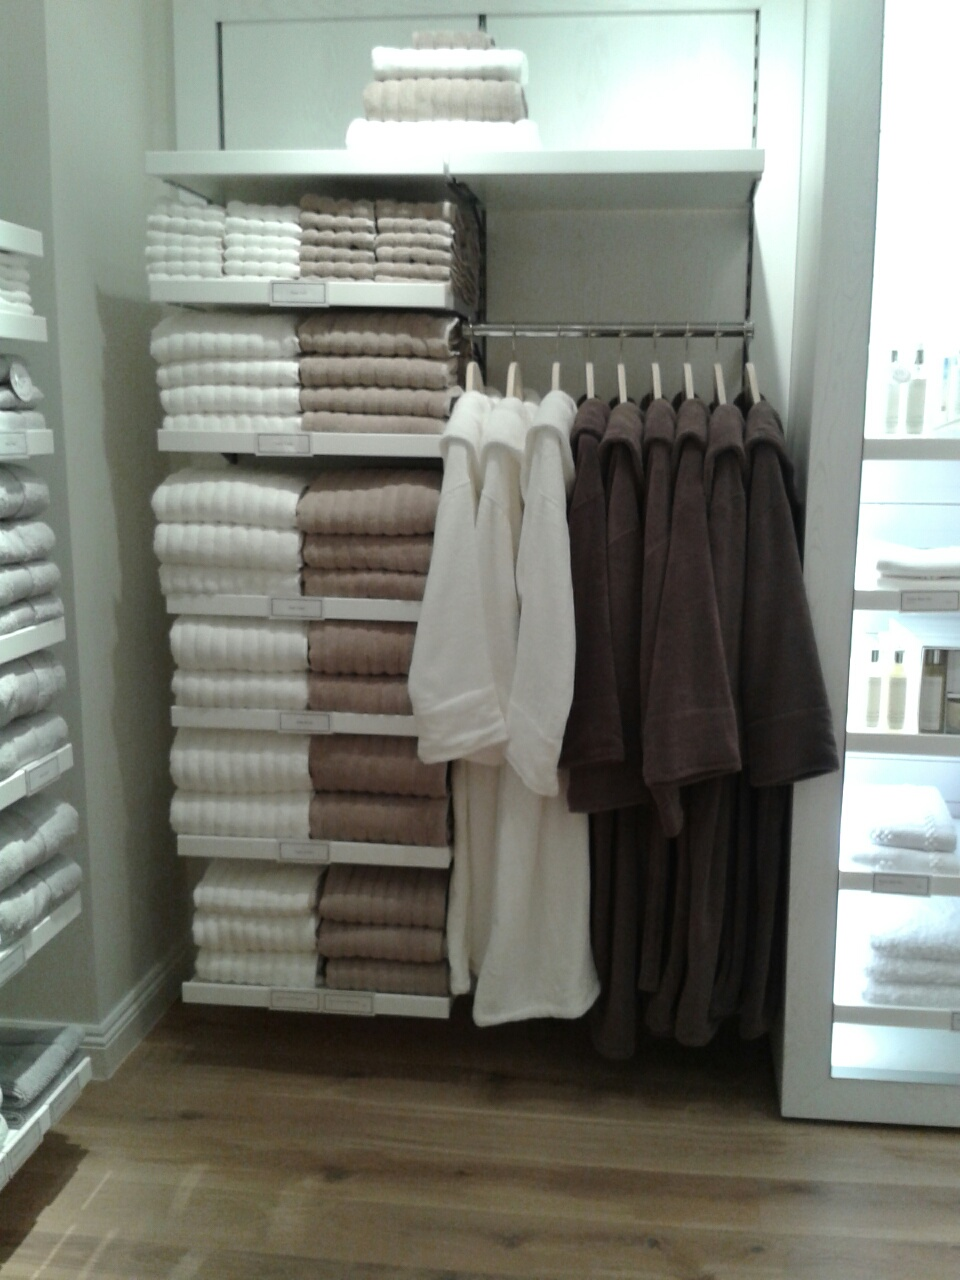 The White Company towel and dressing gown display